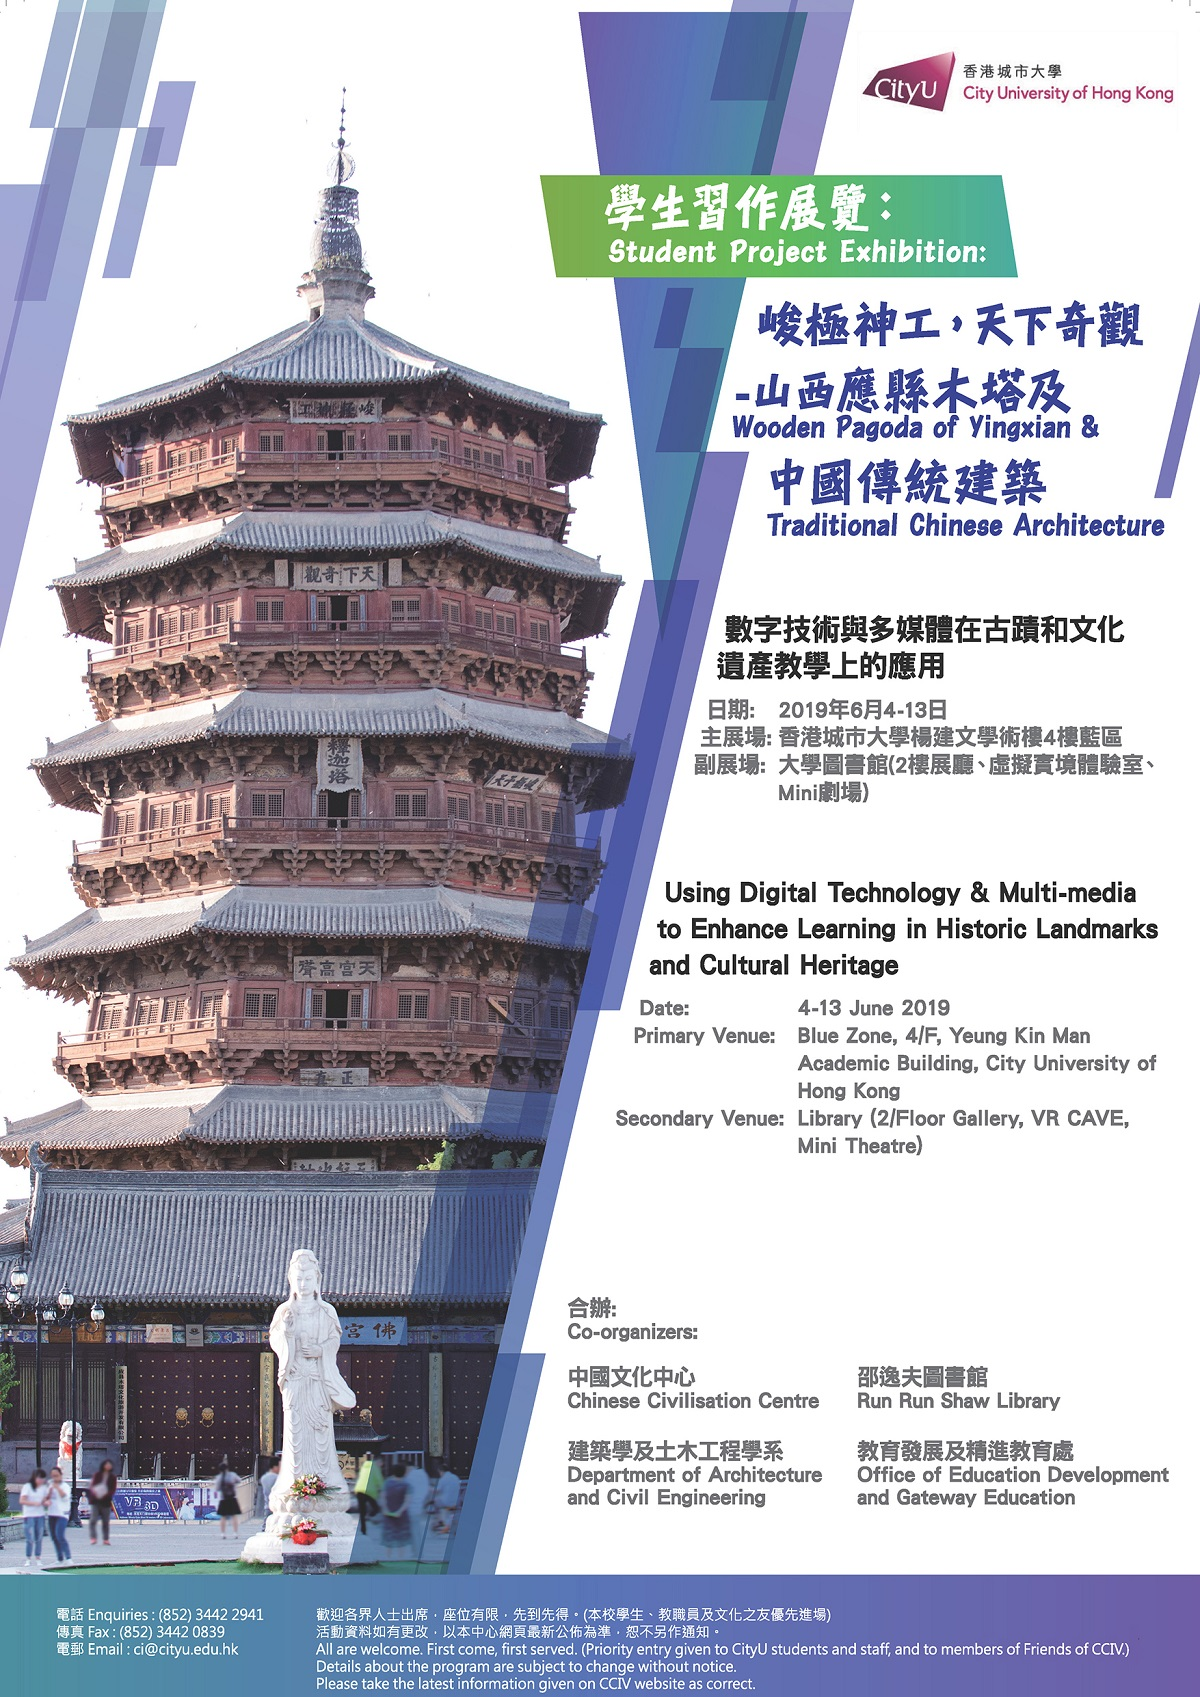 Student Project Exhibition: Wooden Pagoda of Yingxian & Traditional Chinese Architecture 學生習作展覽:峻極神工,天下奇觀-山西應縣木塔及中國傳統建築